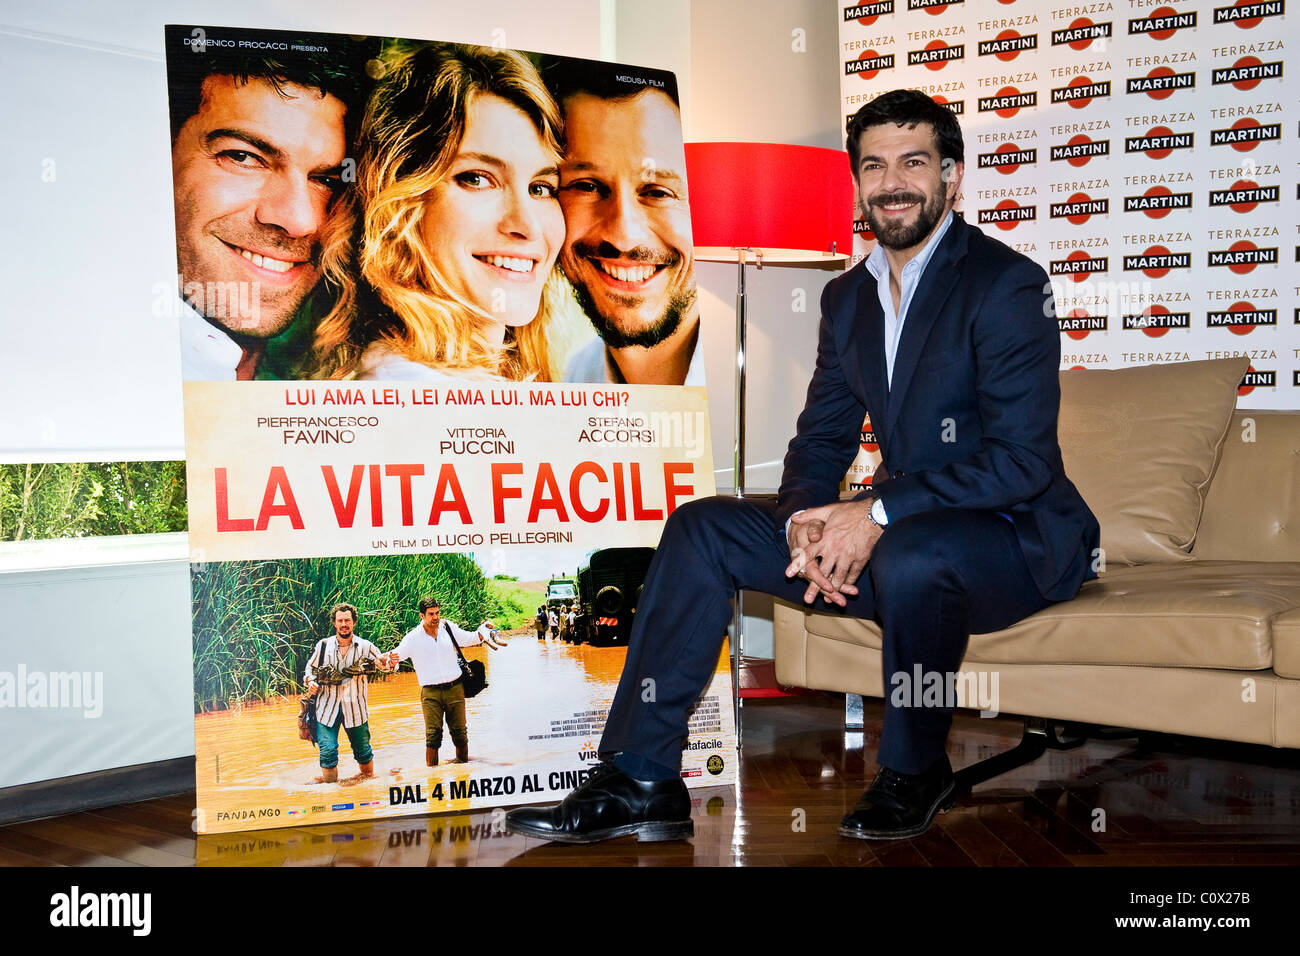 "01.03.2011, Milano, photocall del film ""La vita facile"". Pierfrancesco Favino Immagini Stock"